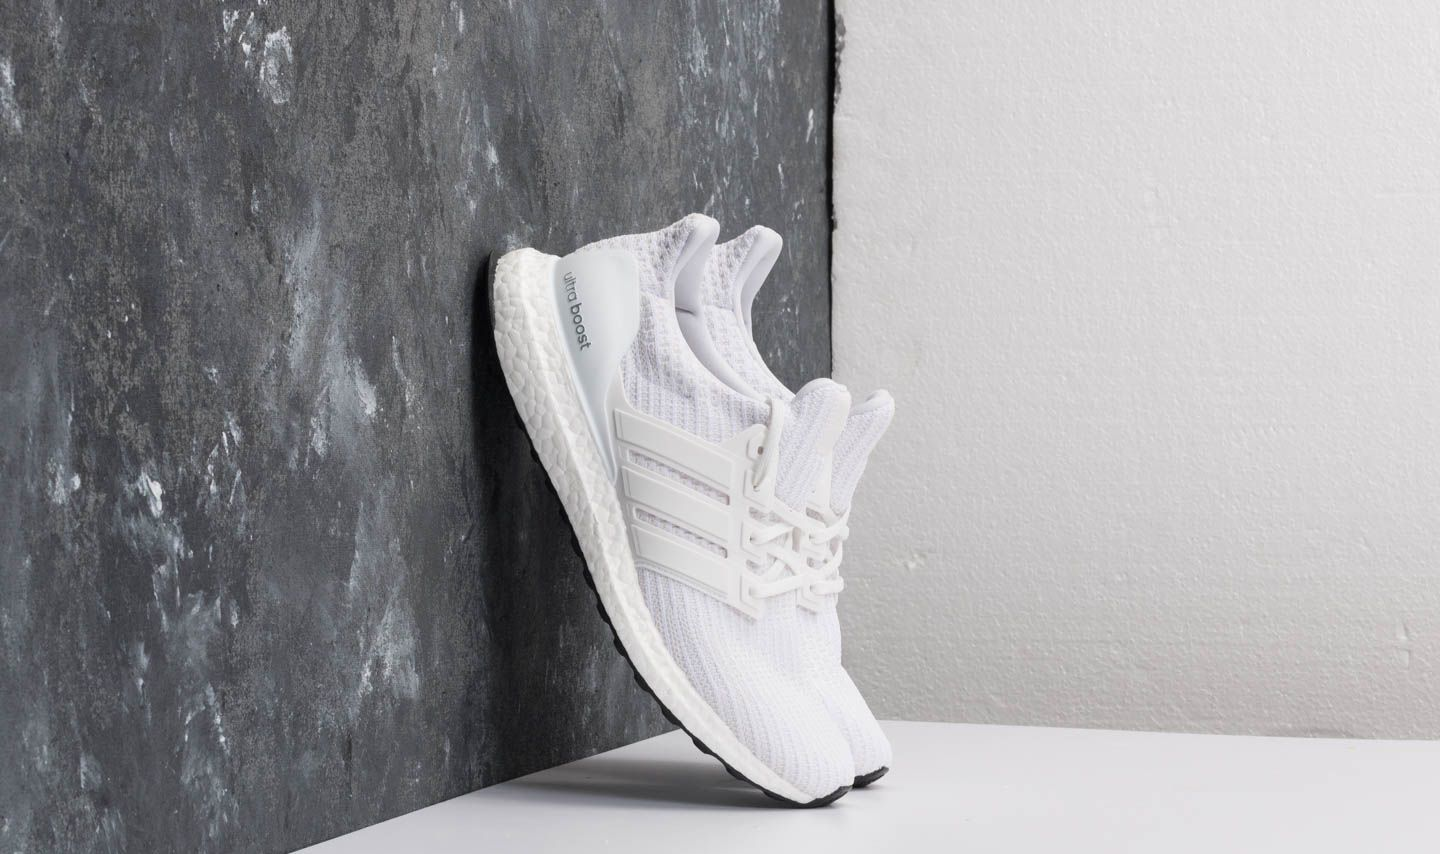 Men's shoes adidas Ultraboost Ftw White/ Ftw White/ Ftw White